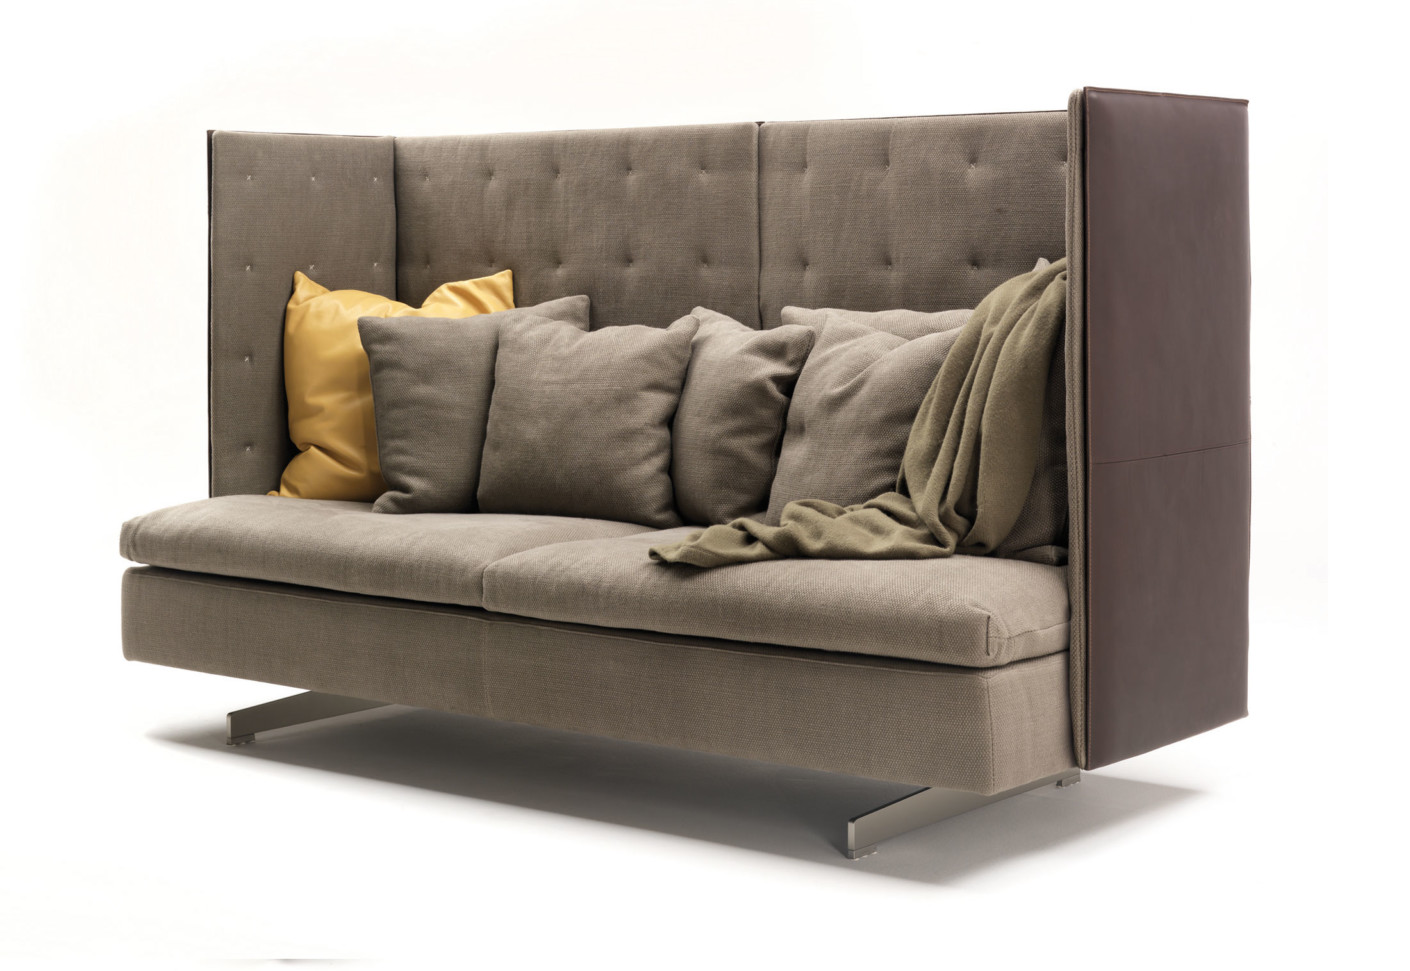 Grantorino high back sofa by Poltrona Frau STYLEPARK : grantorino high back sofa 1 from www.stylepark.com size 1410 x 971 jpeg 200kB